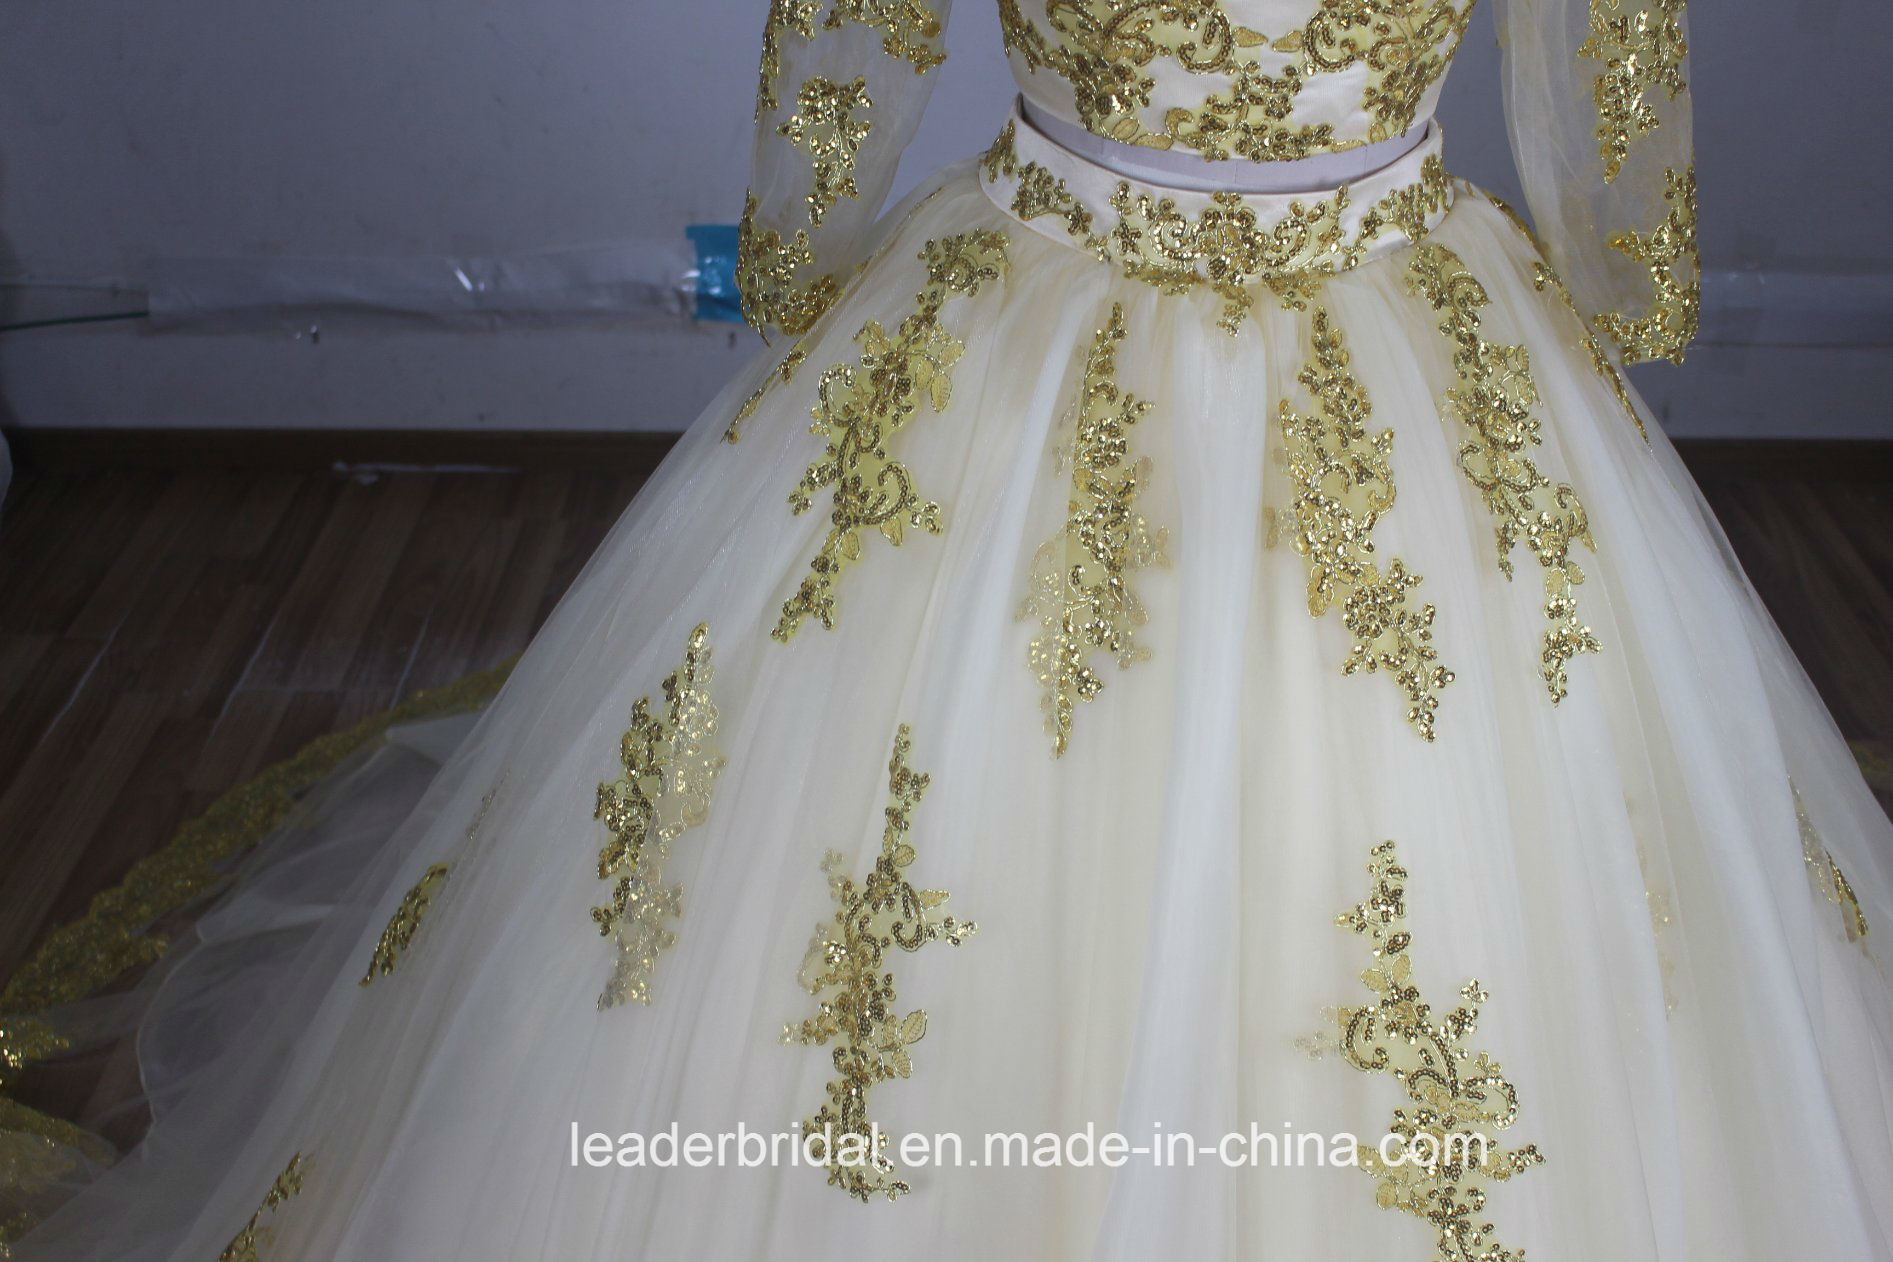 China Gold Lace Bridal Ball Gown Tulle Muslim Long Sleeves Wedding